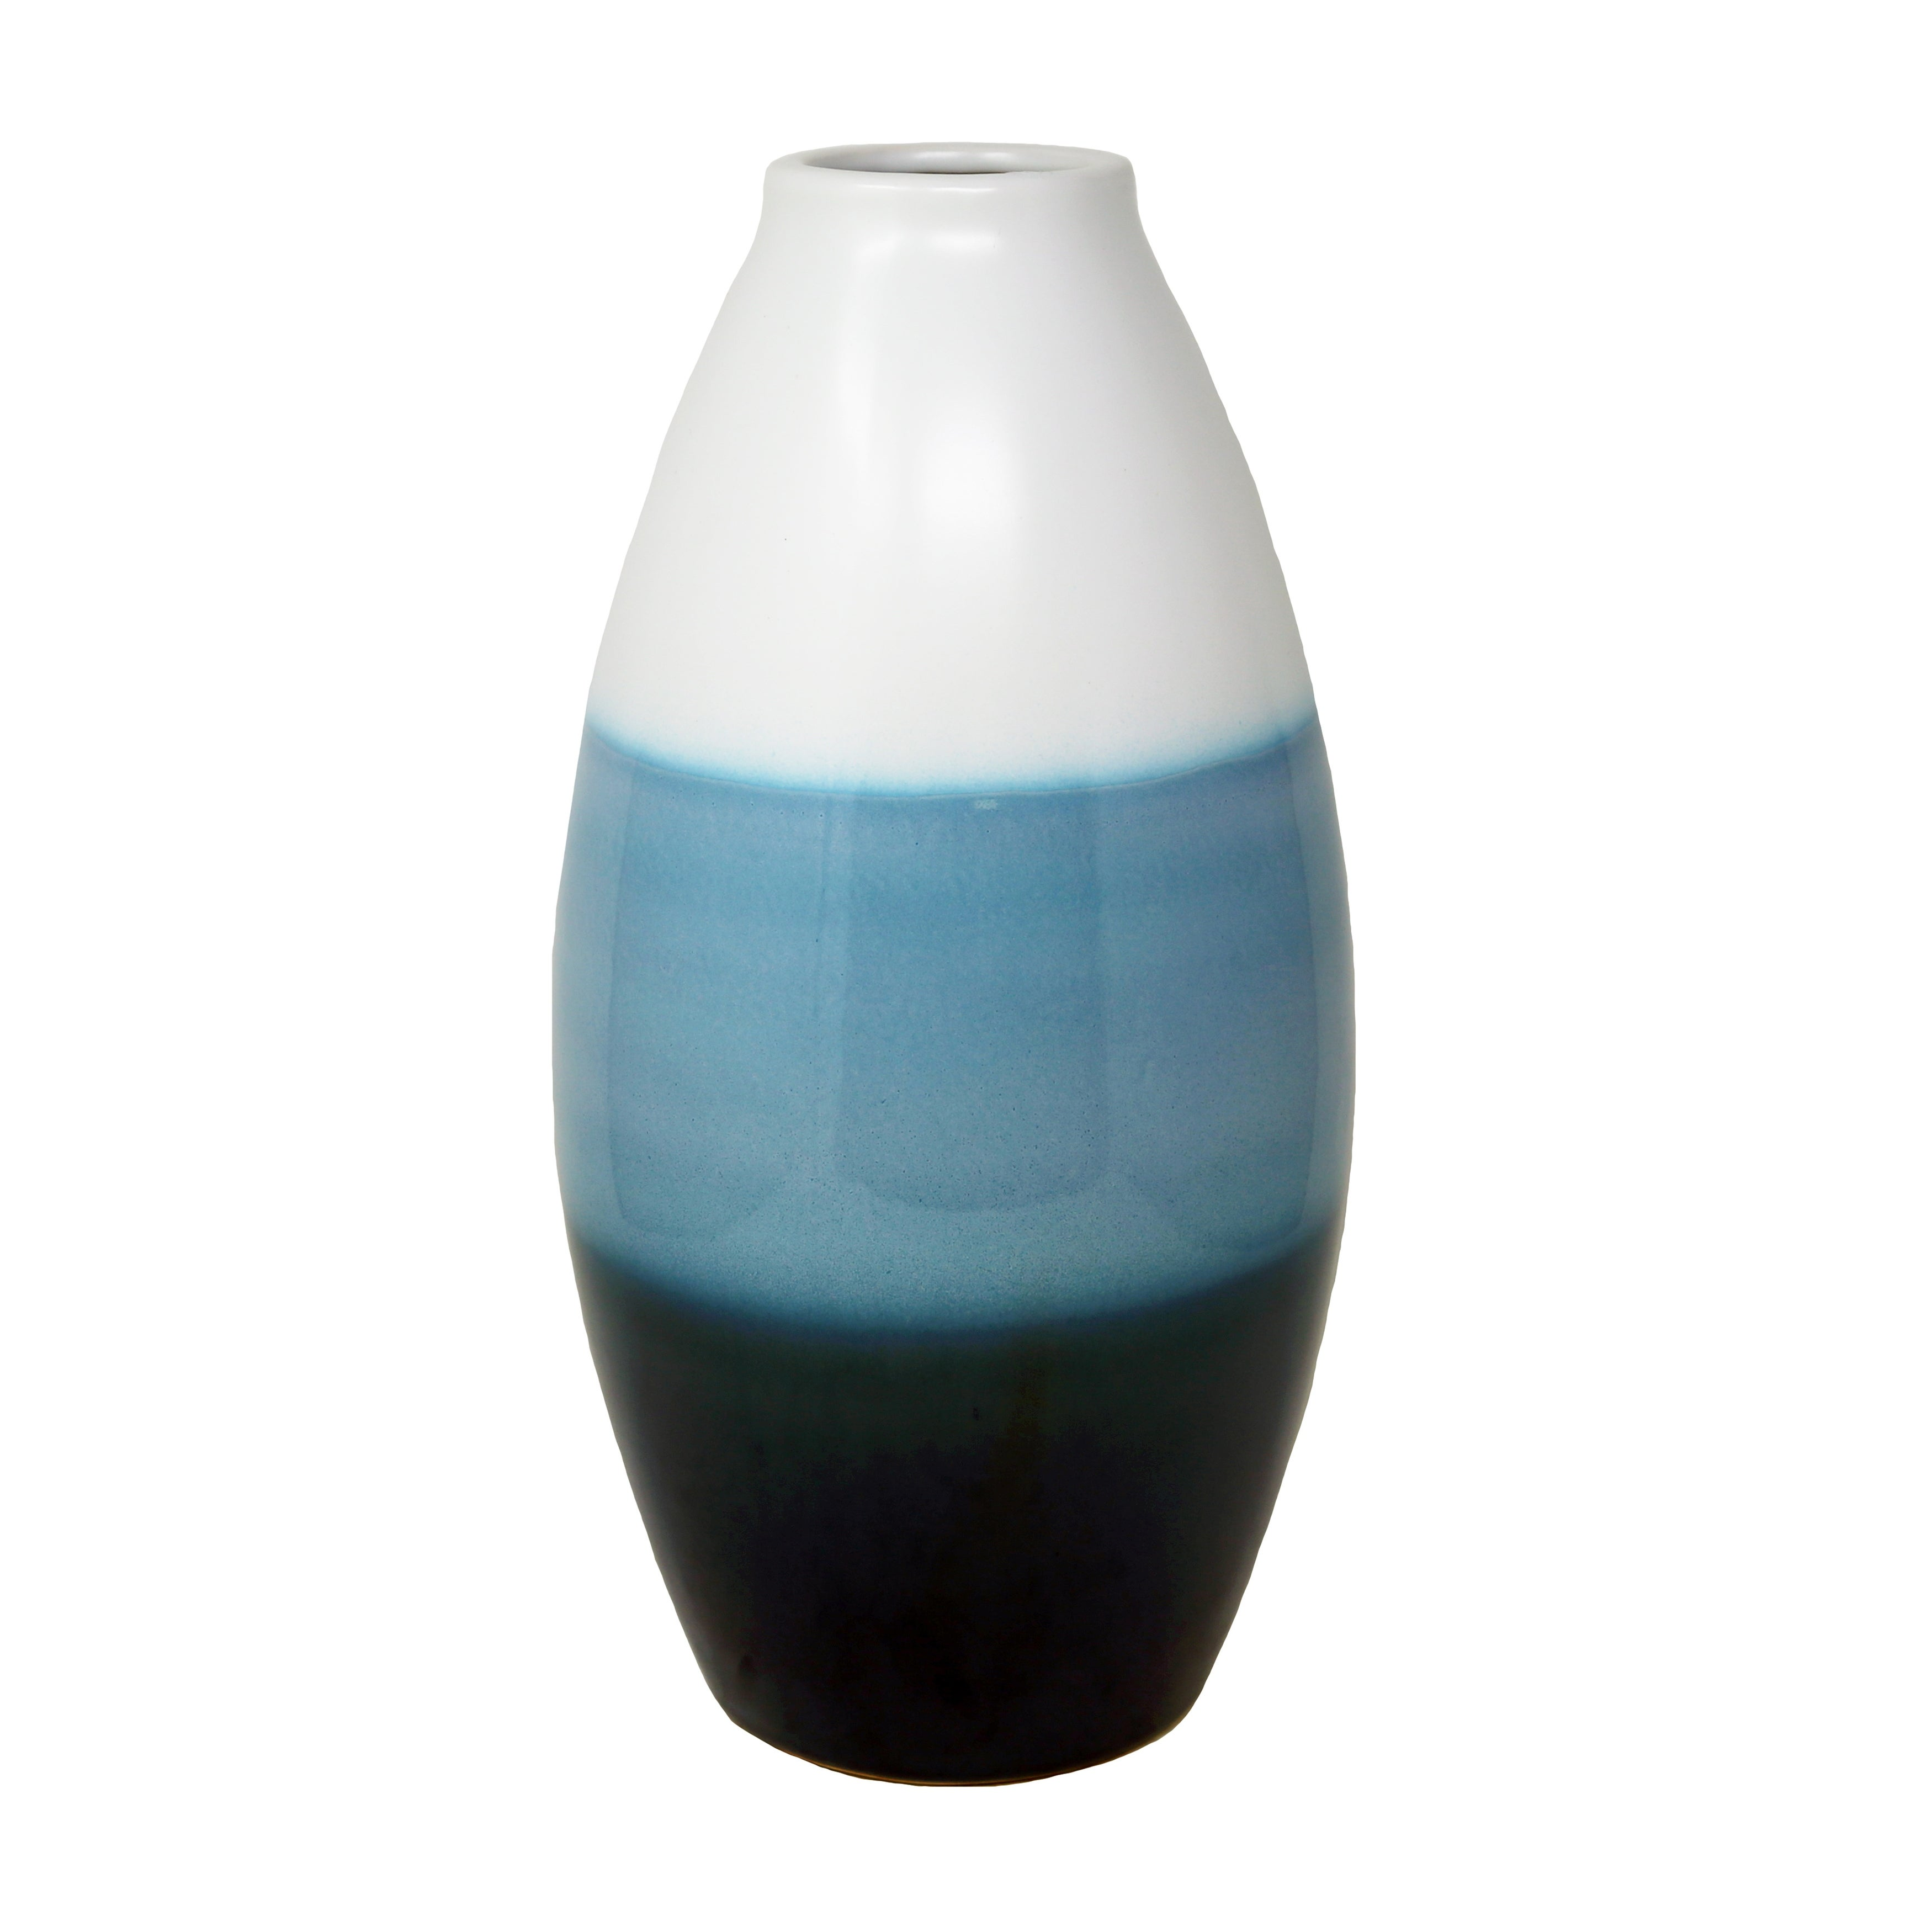 Convex Shaped Ceramic Vase with Three Layered Design, White and Blue